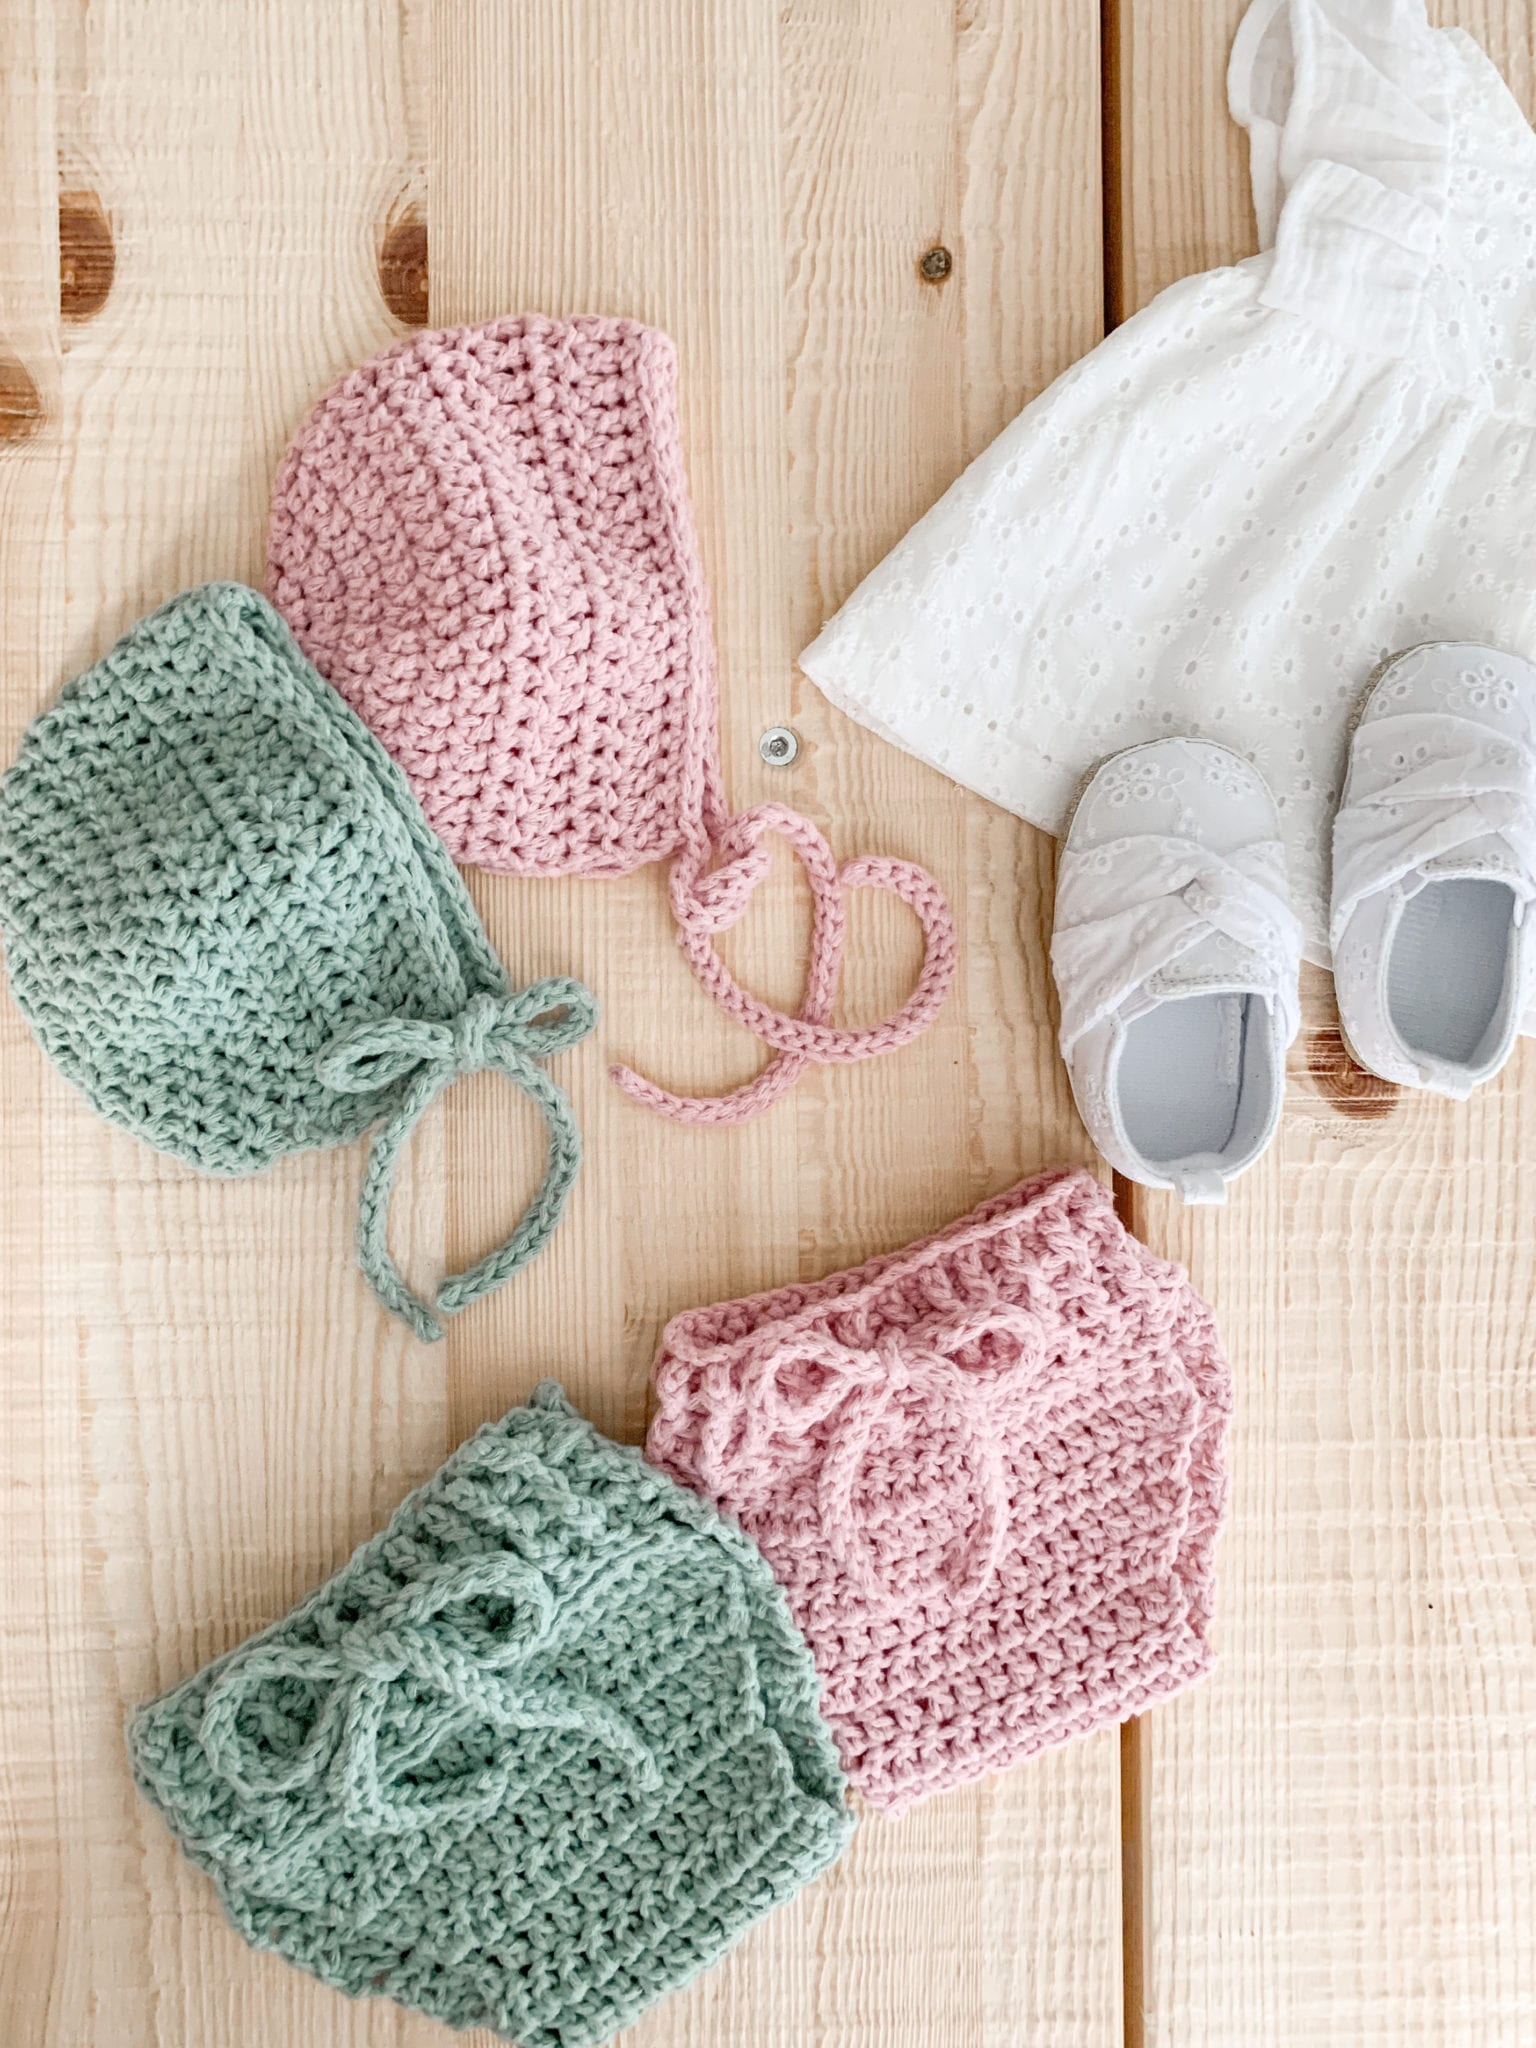 Baby bonnet and baby bloomers make a cute crochet baby set.